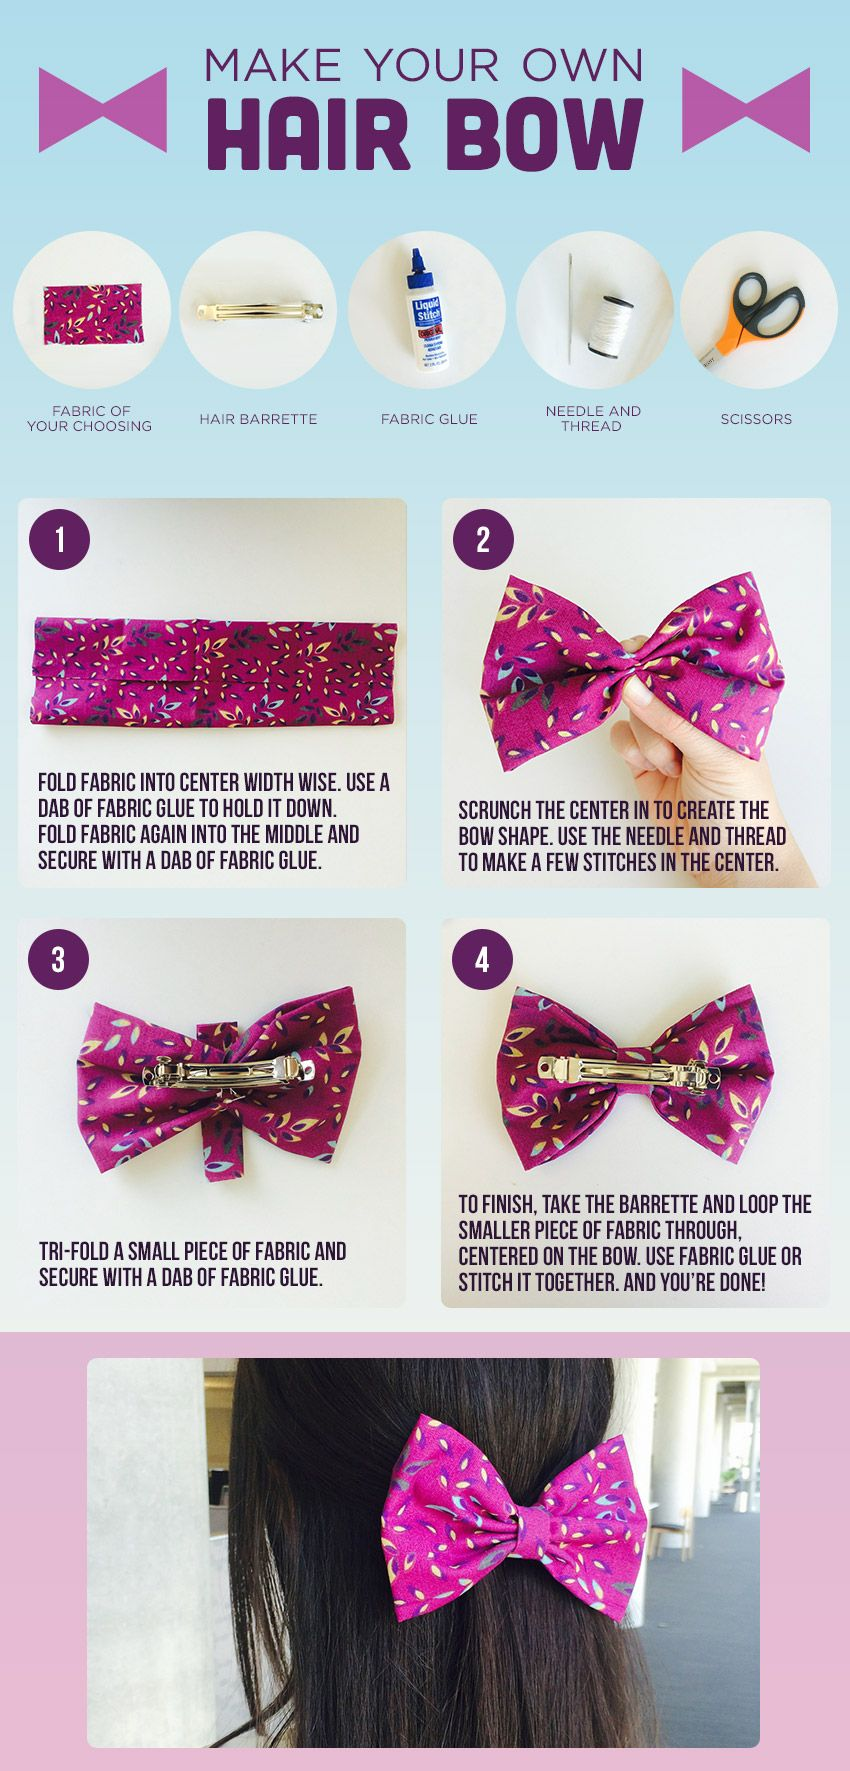 DIY: Make Your Own Hair Bow | Disney Style